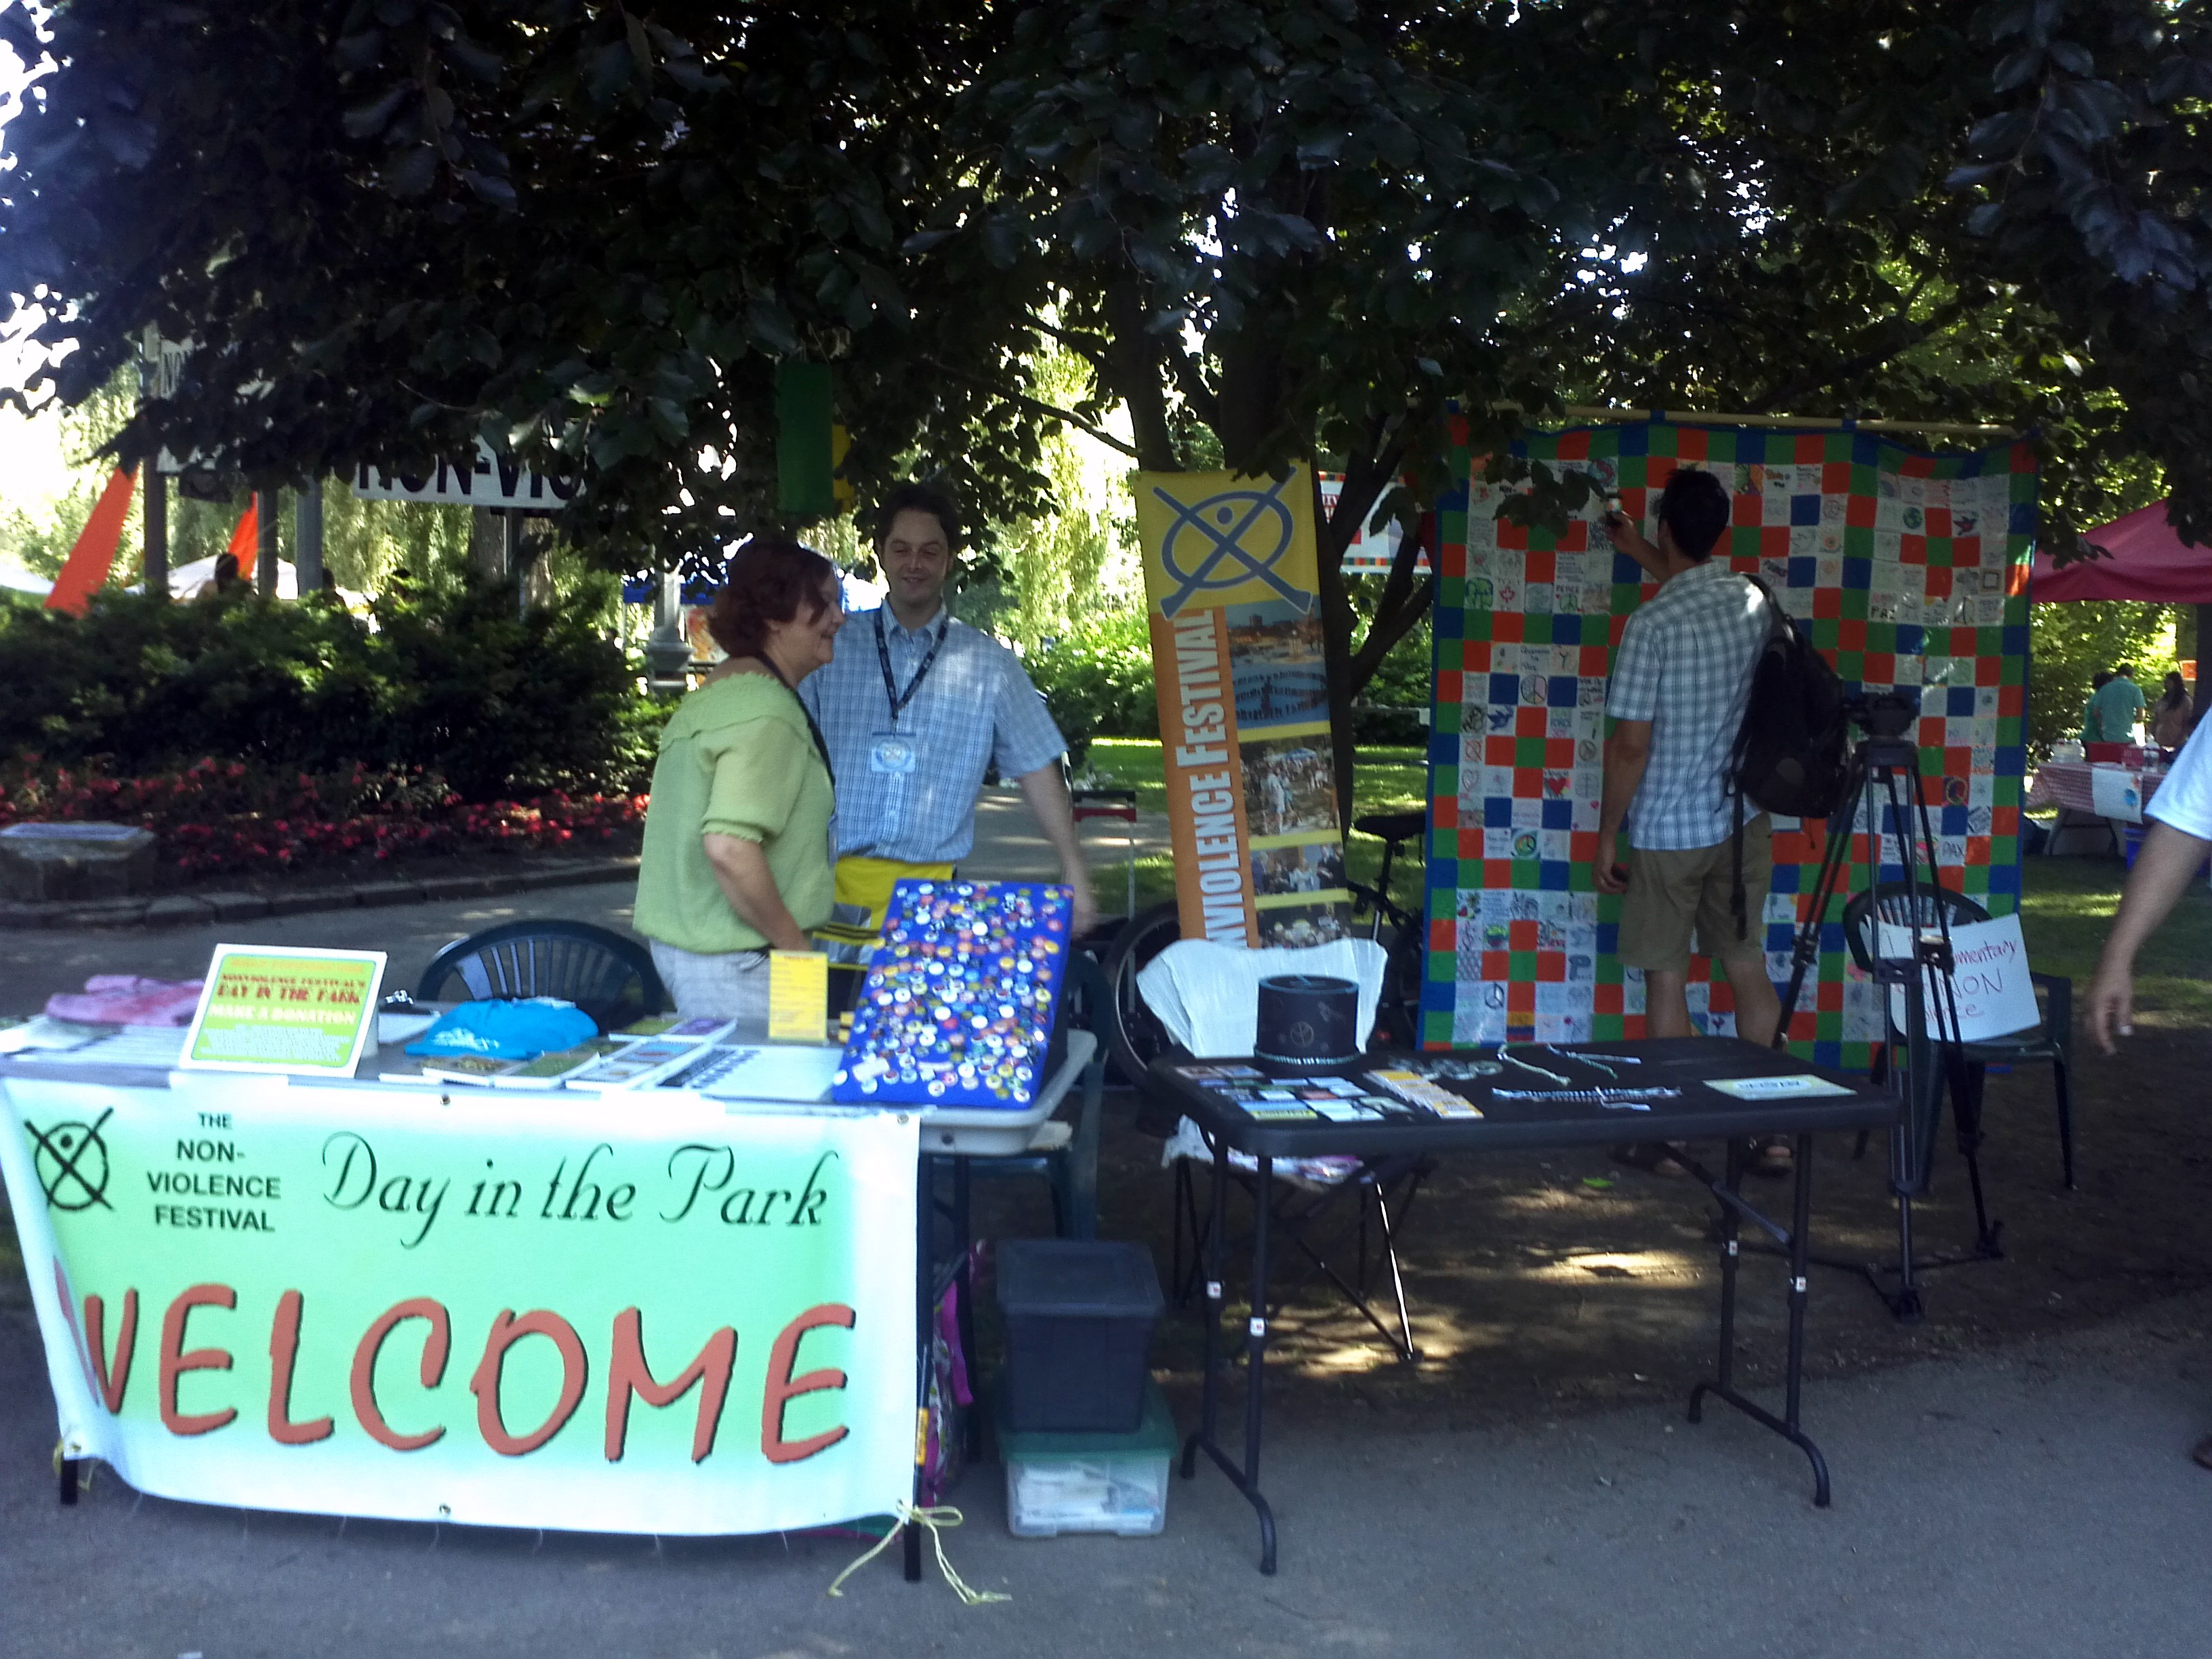 "The Welcome booth, showing banner ""The Non-Violence Festival Day in the Park WELCOME"""